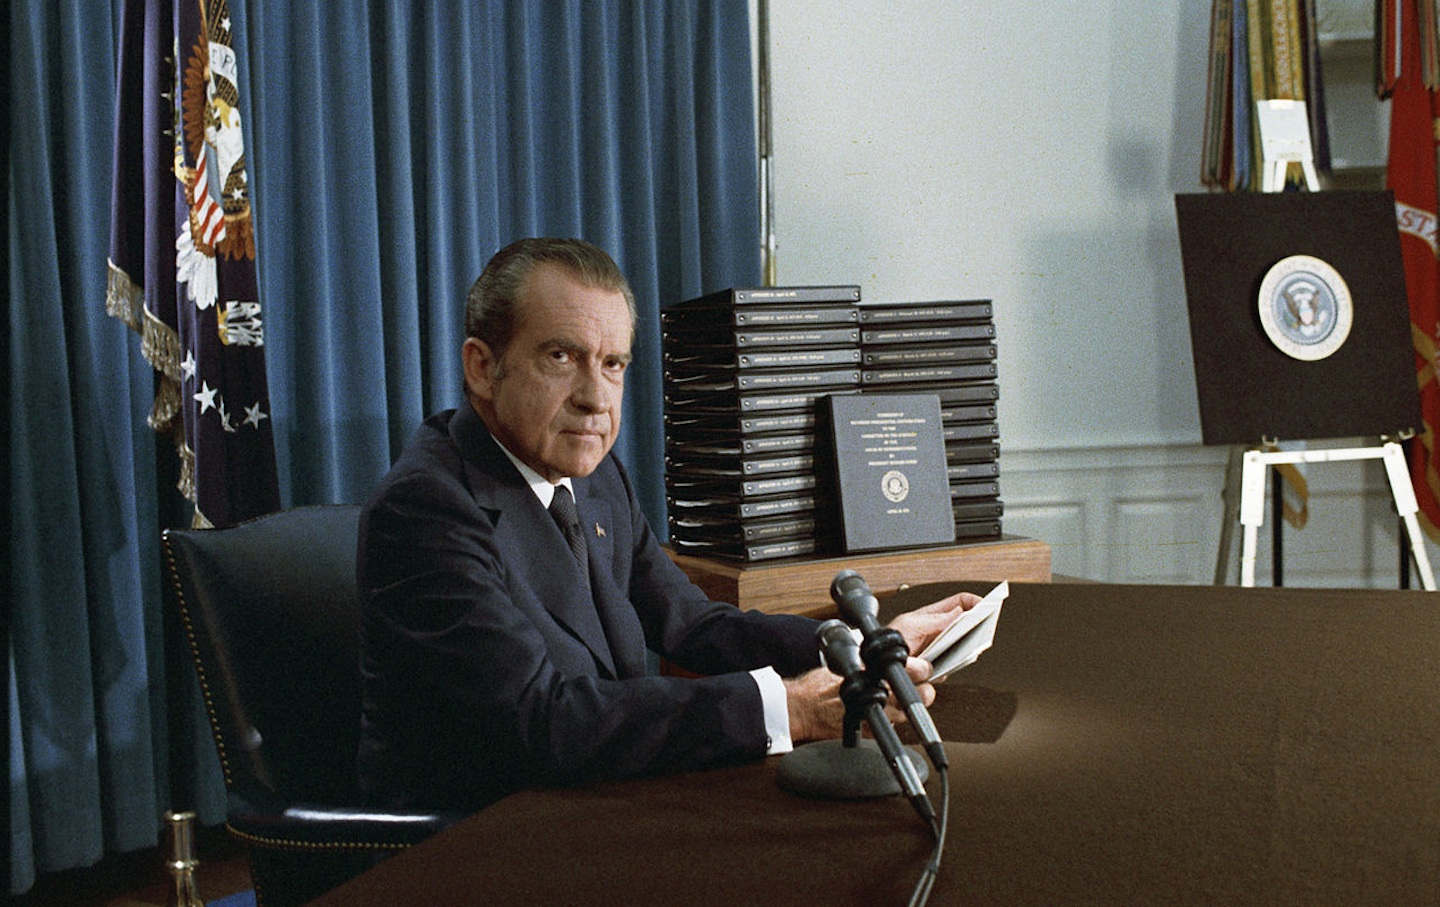 president richard nixon and the watergate Timeline 1968 november 5 - richard milhous nixon, the 55-year-old former vice president who lost the presidency for the republicans in 1960, reclaims it by defeating hubert humphrey in one of the.